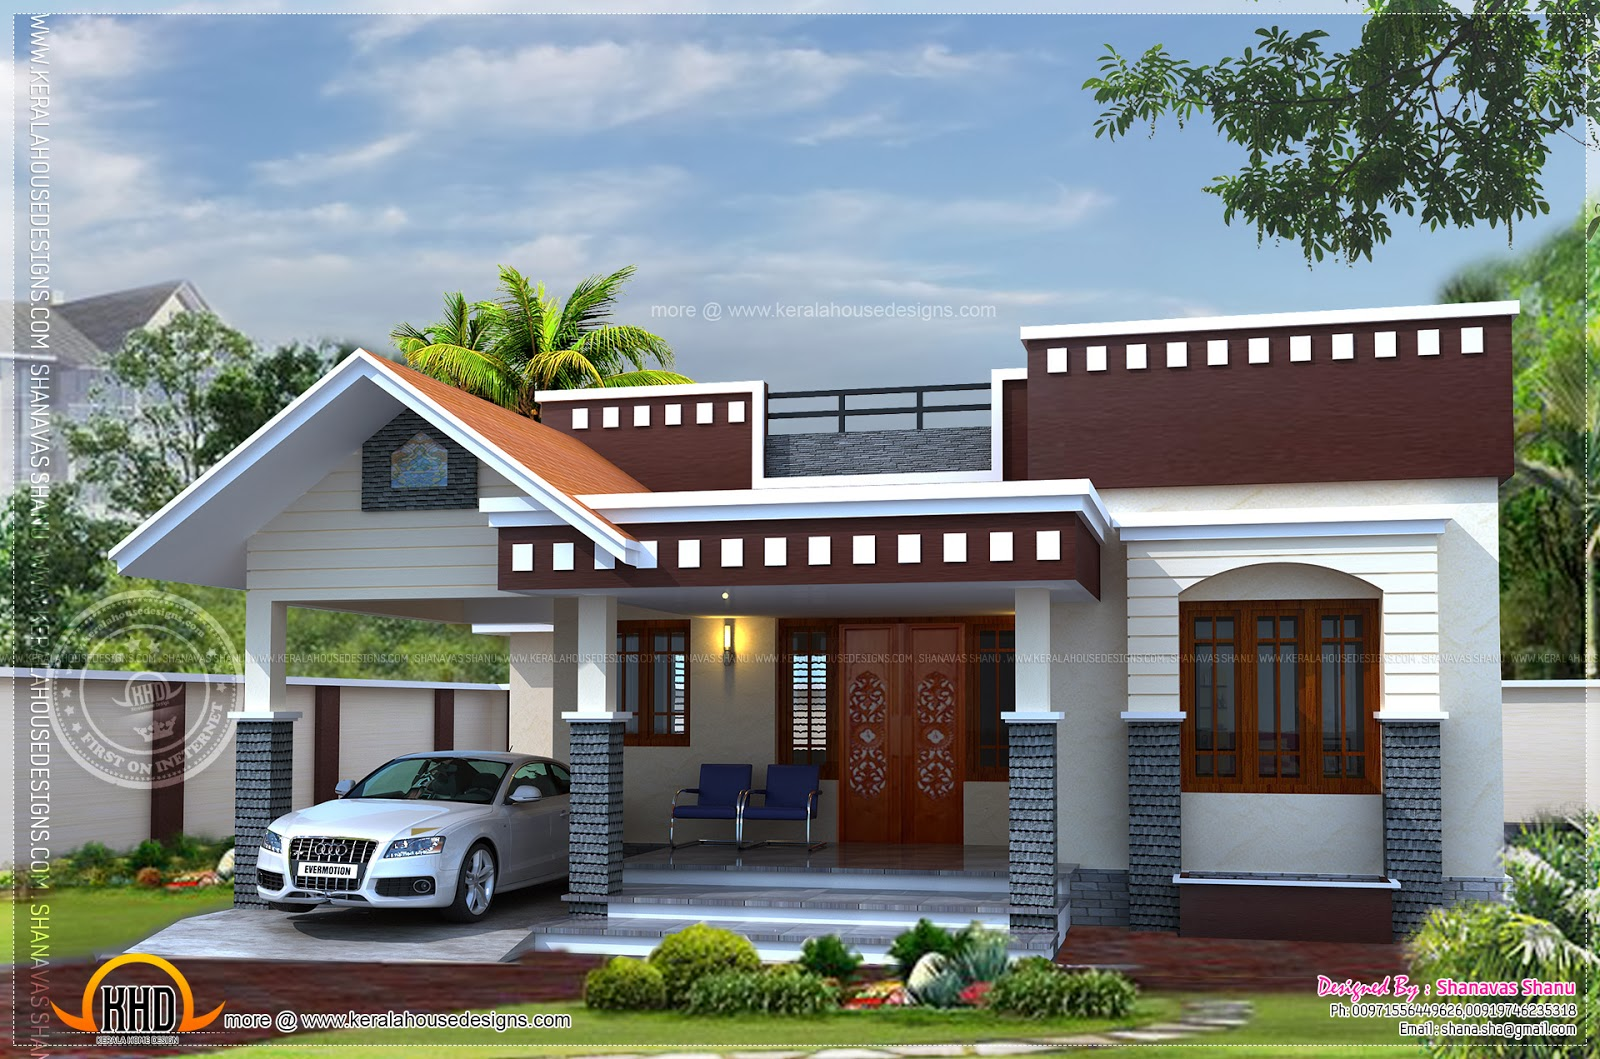 Home plan of small house kerala home design and floor plans for Small budget house plans in kerala